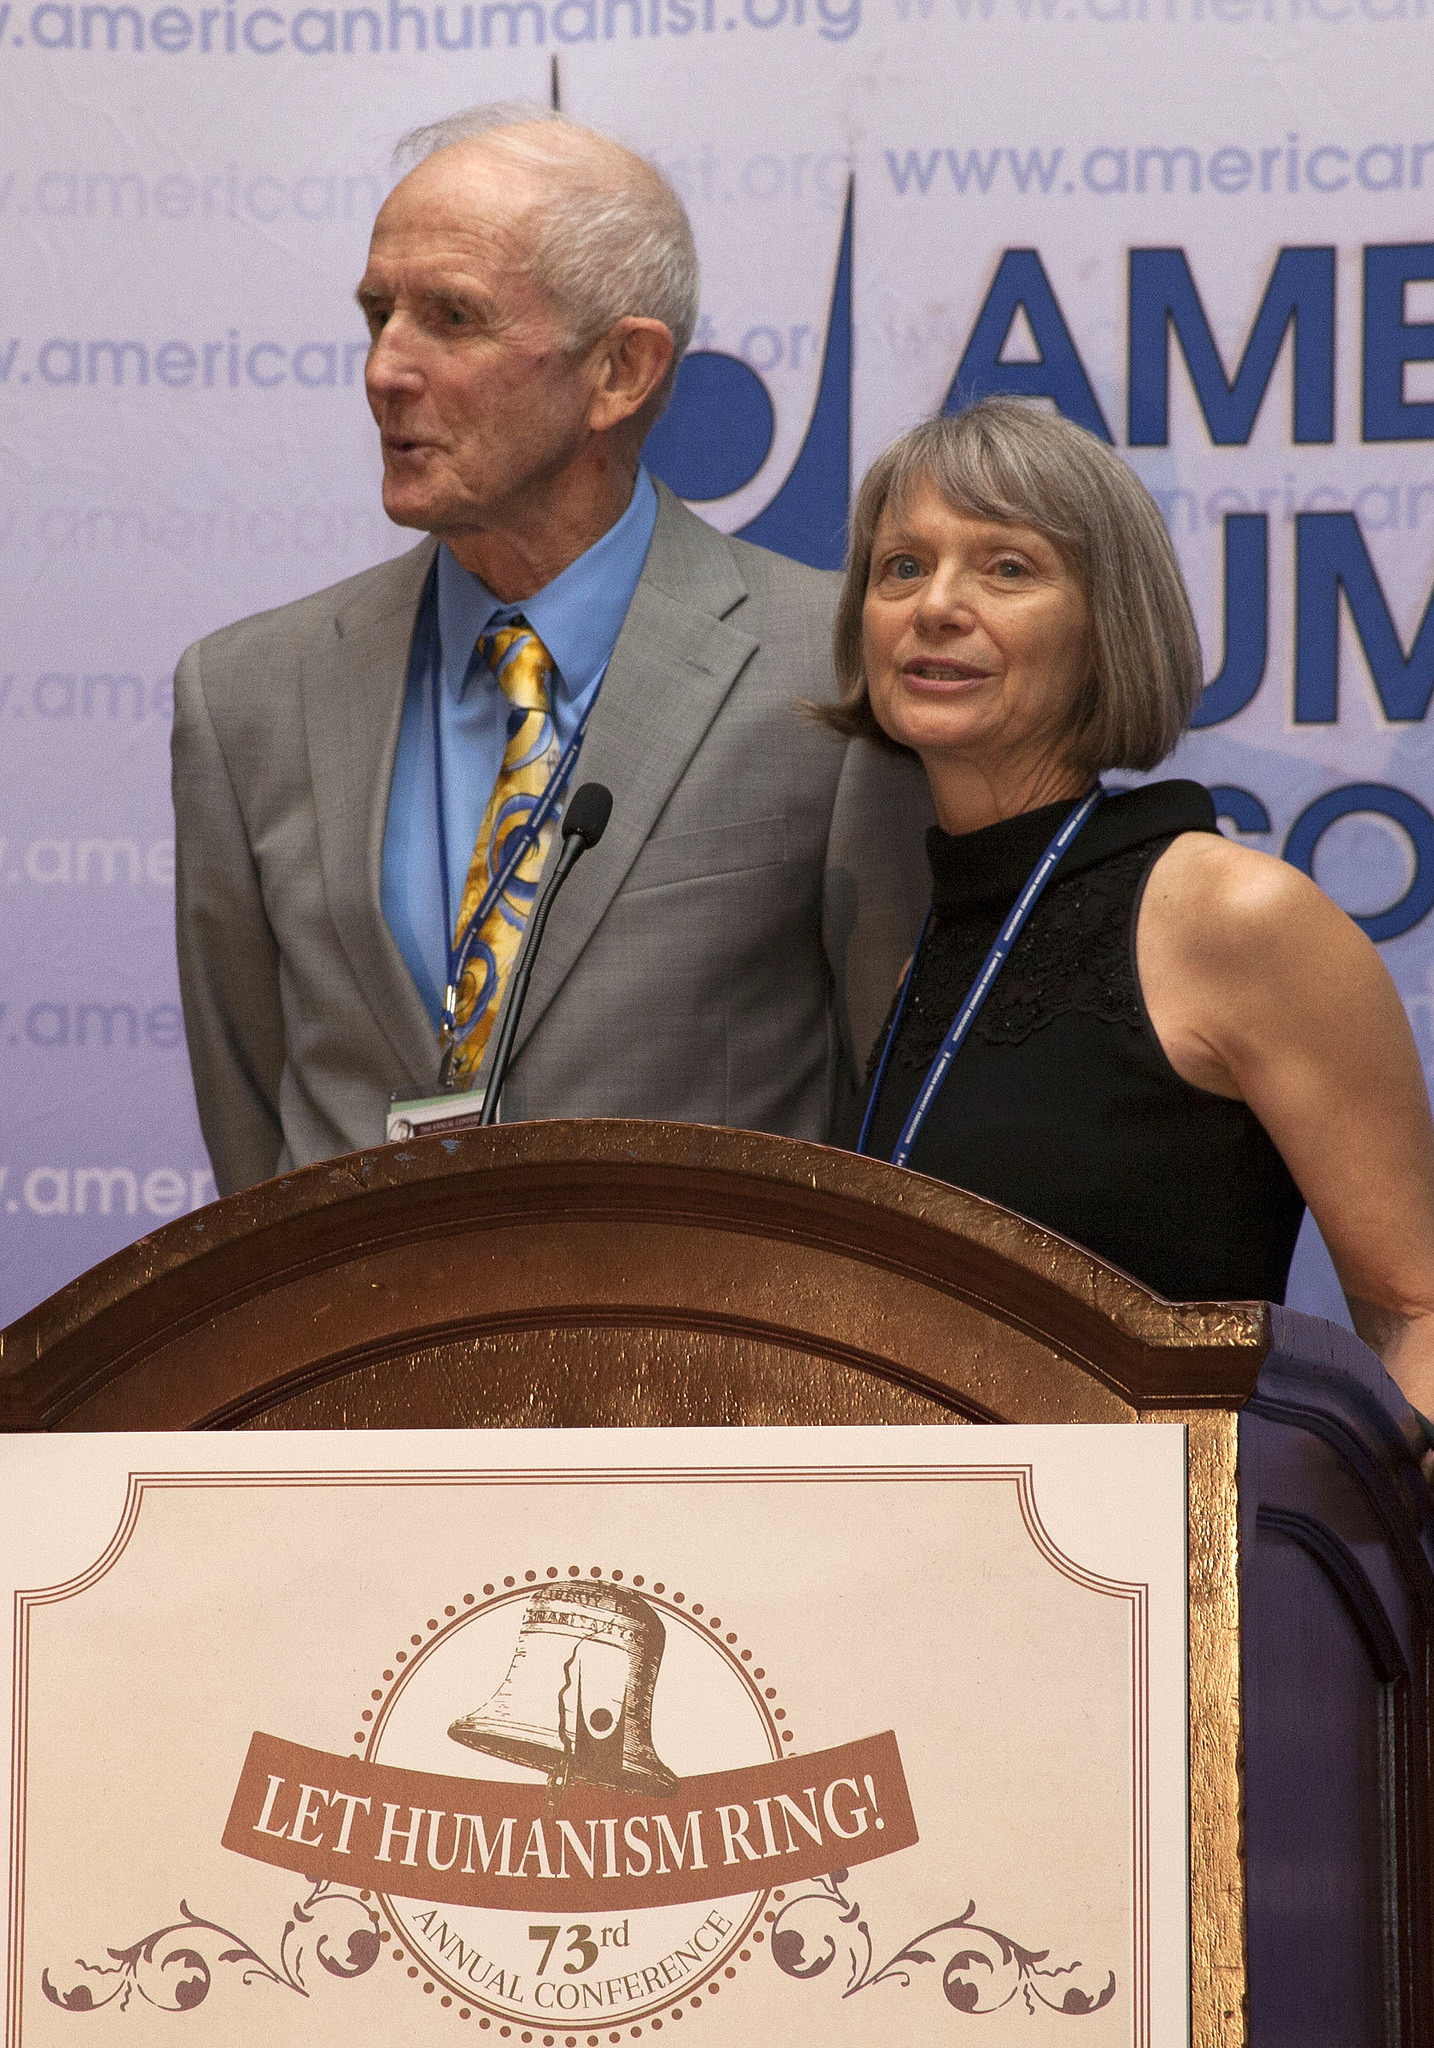 Carol and Don Ardell, Robert G. Ingersoll Orators